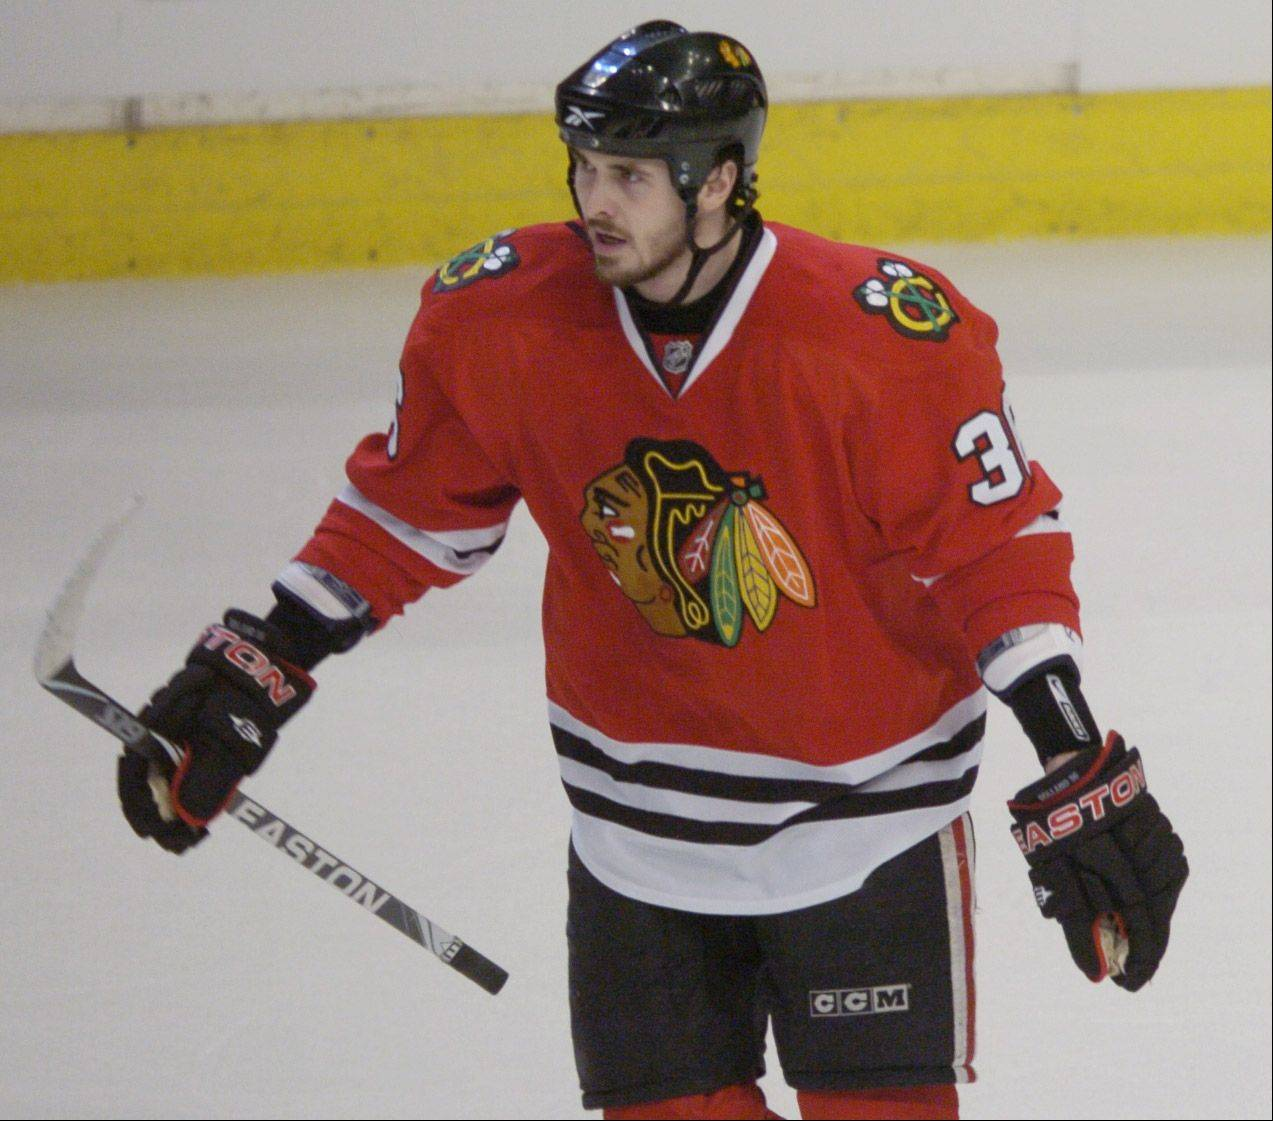 Blackhawks center Dave Bolland feels fortunate that he has bounced back from a concussion he suffered last March.